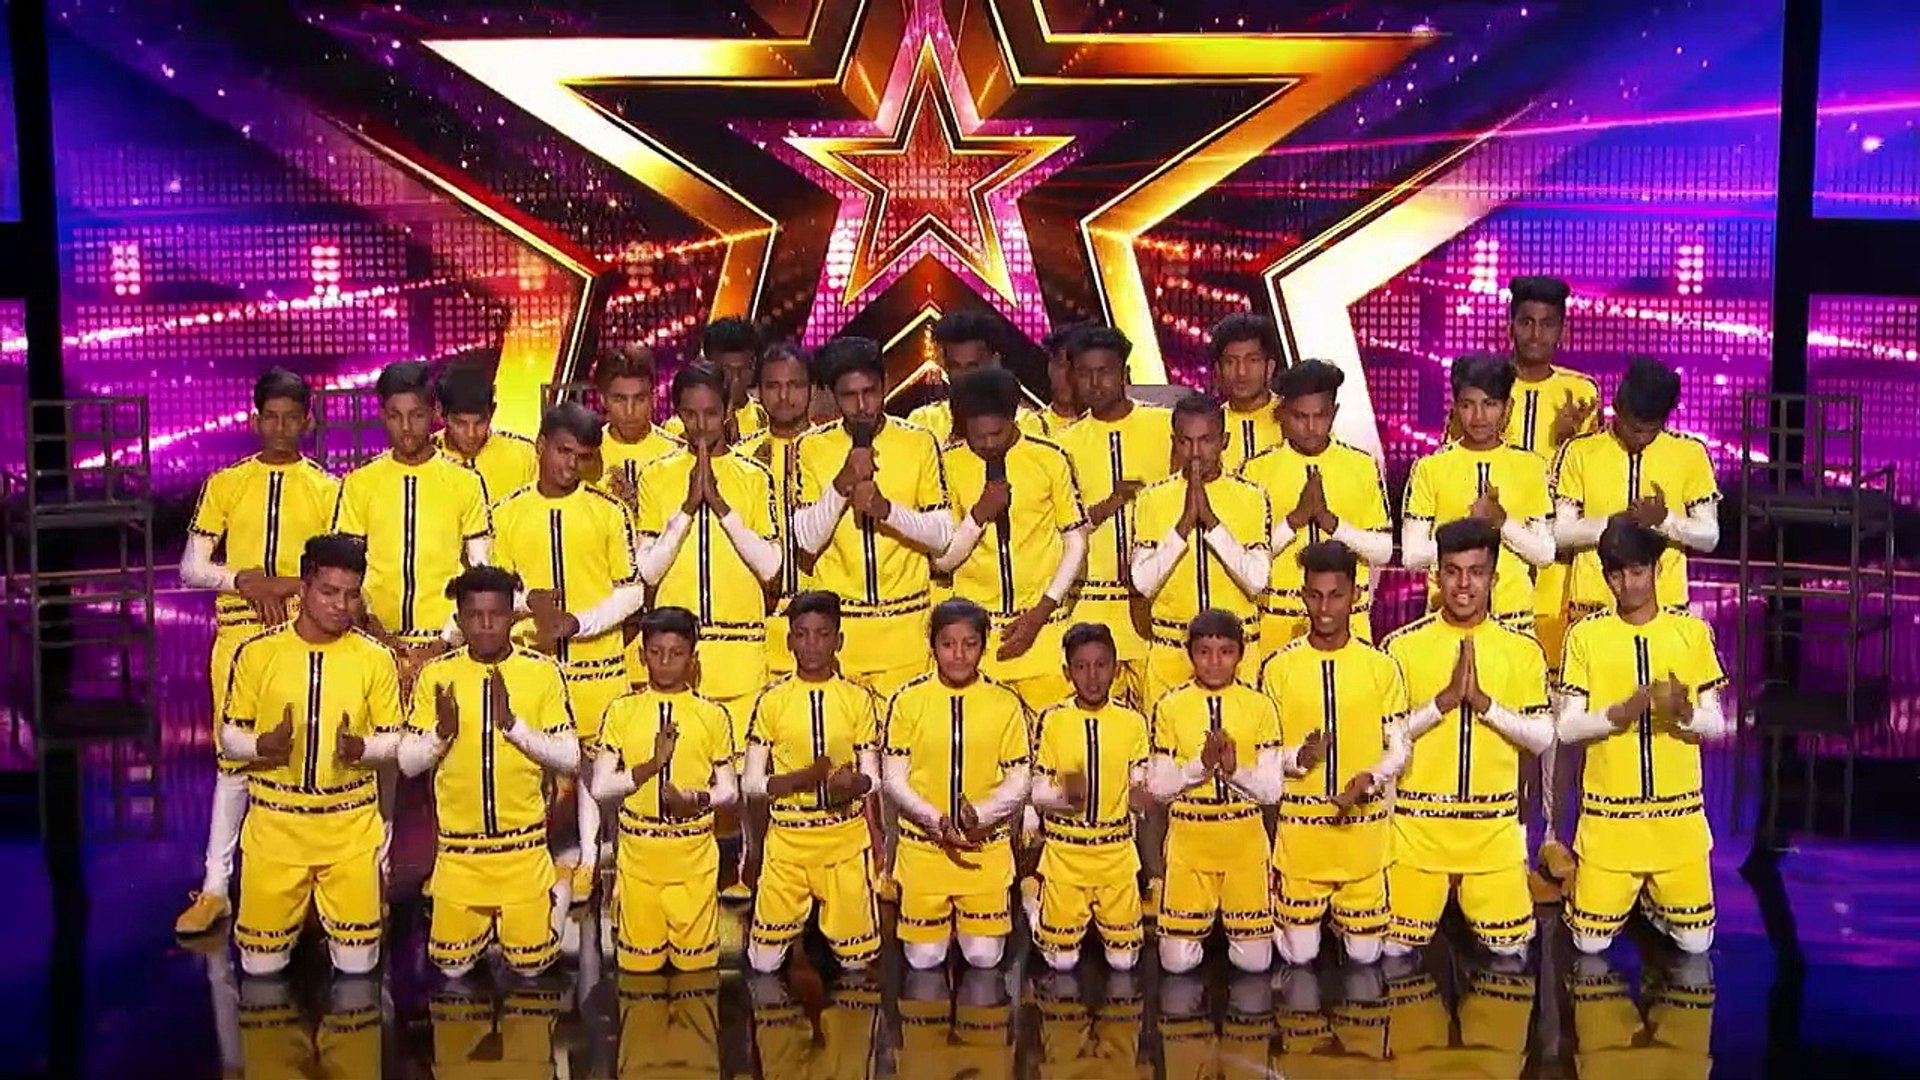 Indian Dance Crew V Unbeatable Earns Golden Buzzer From Dwyane